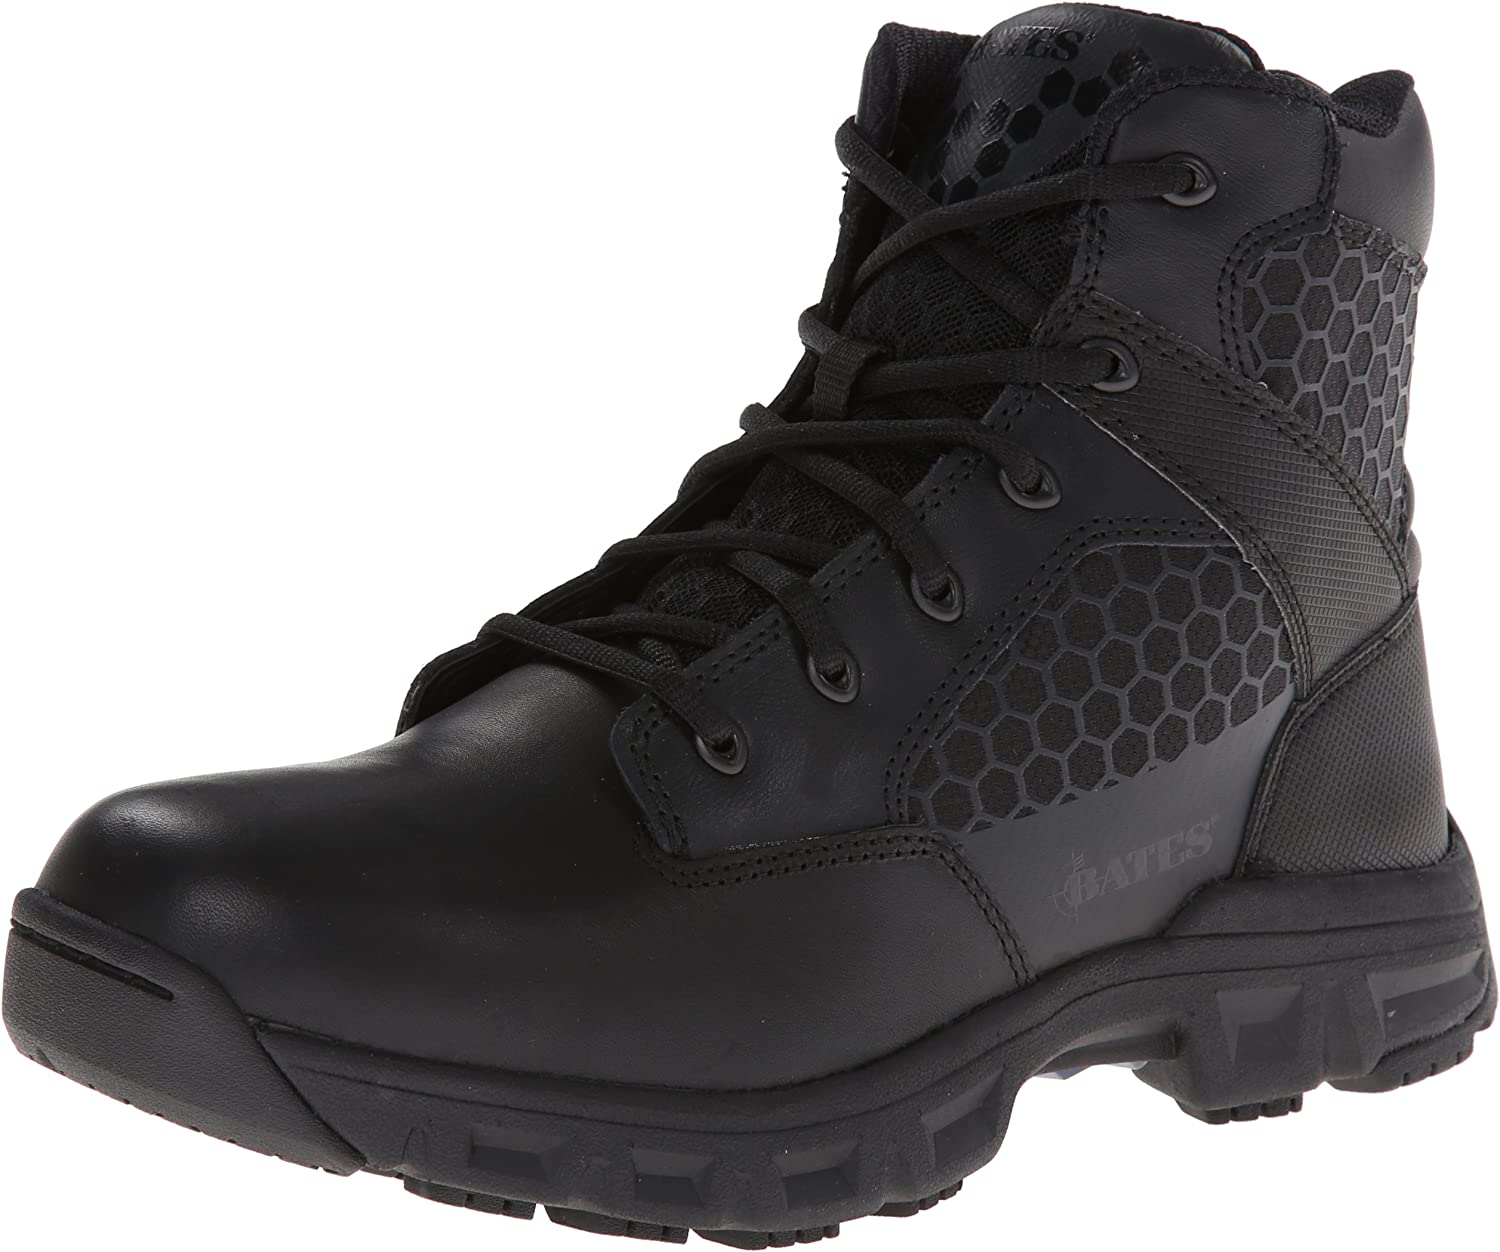 Bates Men's Code 6.6 Inch Side Zip Lightweight Tactical Boot